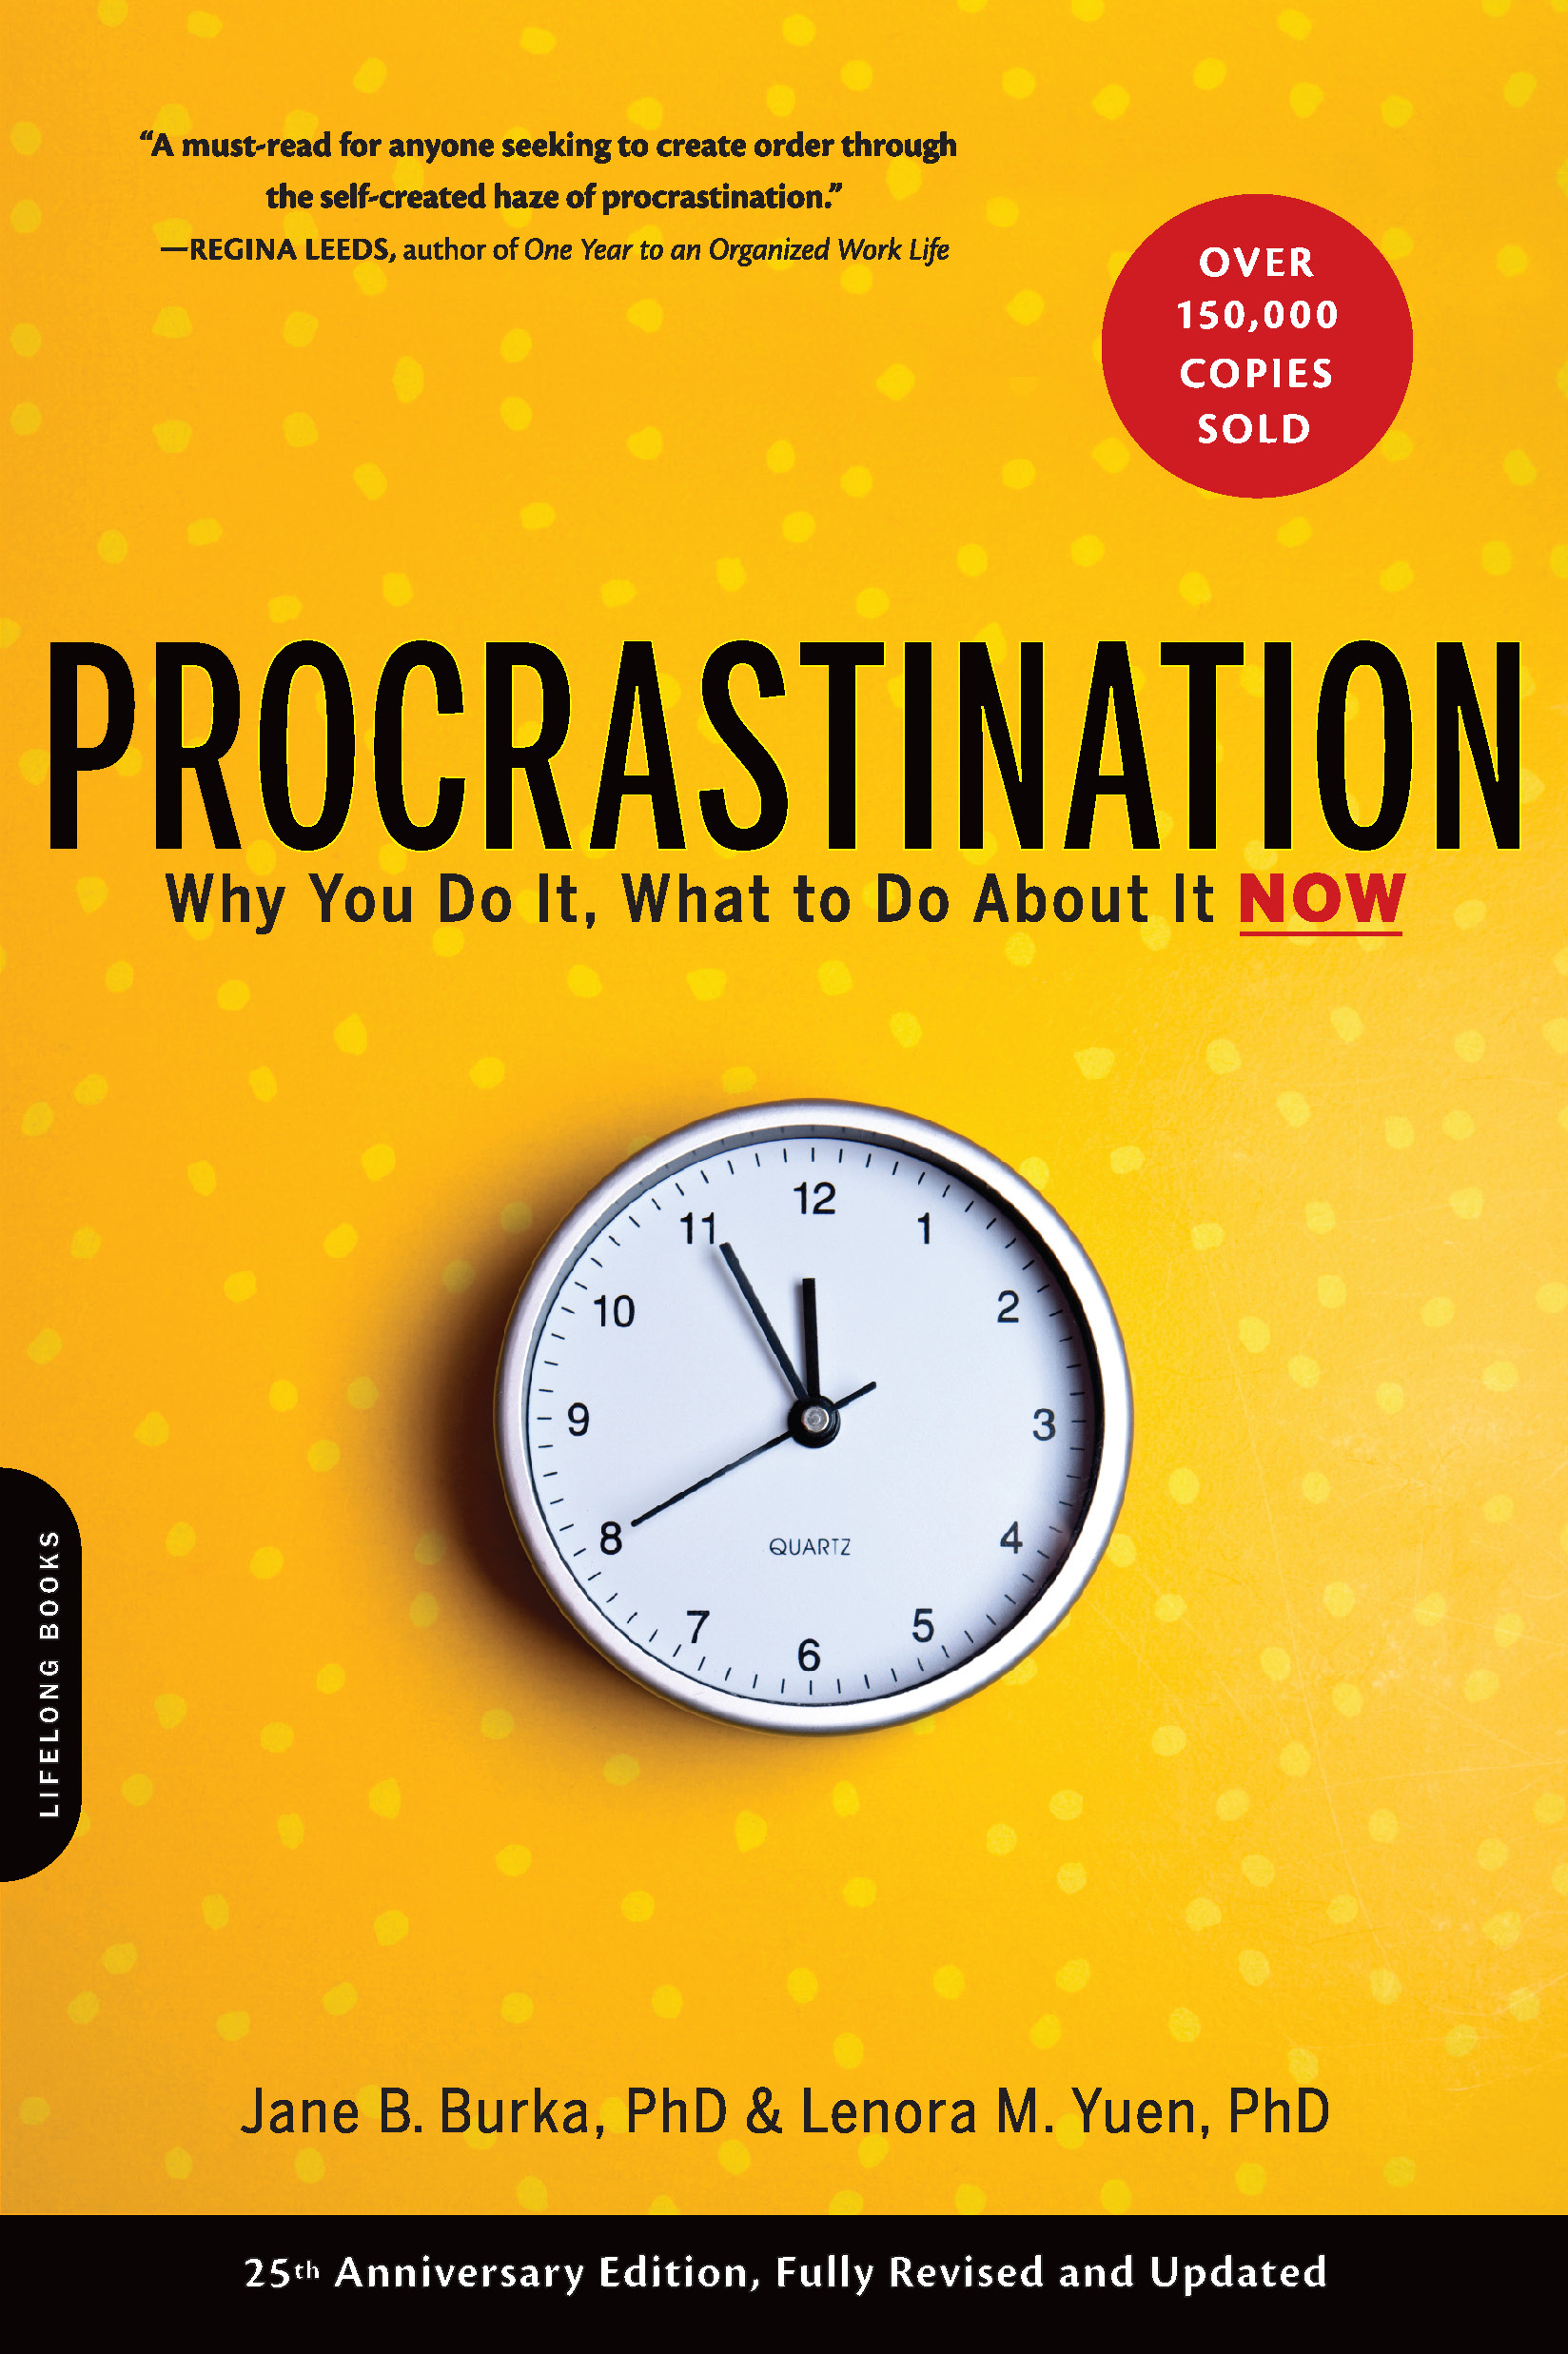 Procrastination: Why You Do It, What to Do About It Now By: Jane B. Burka,Lenora M. Yuen